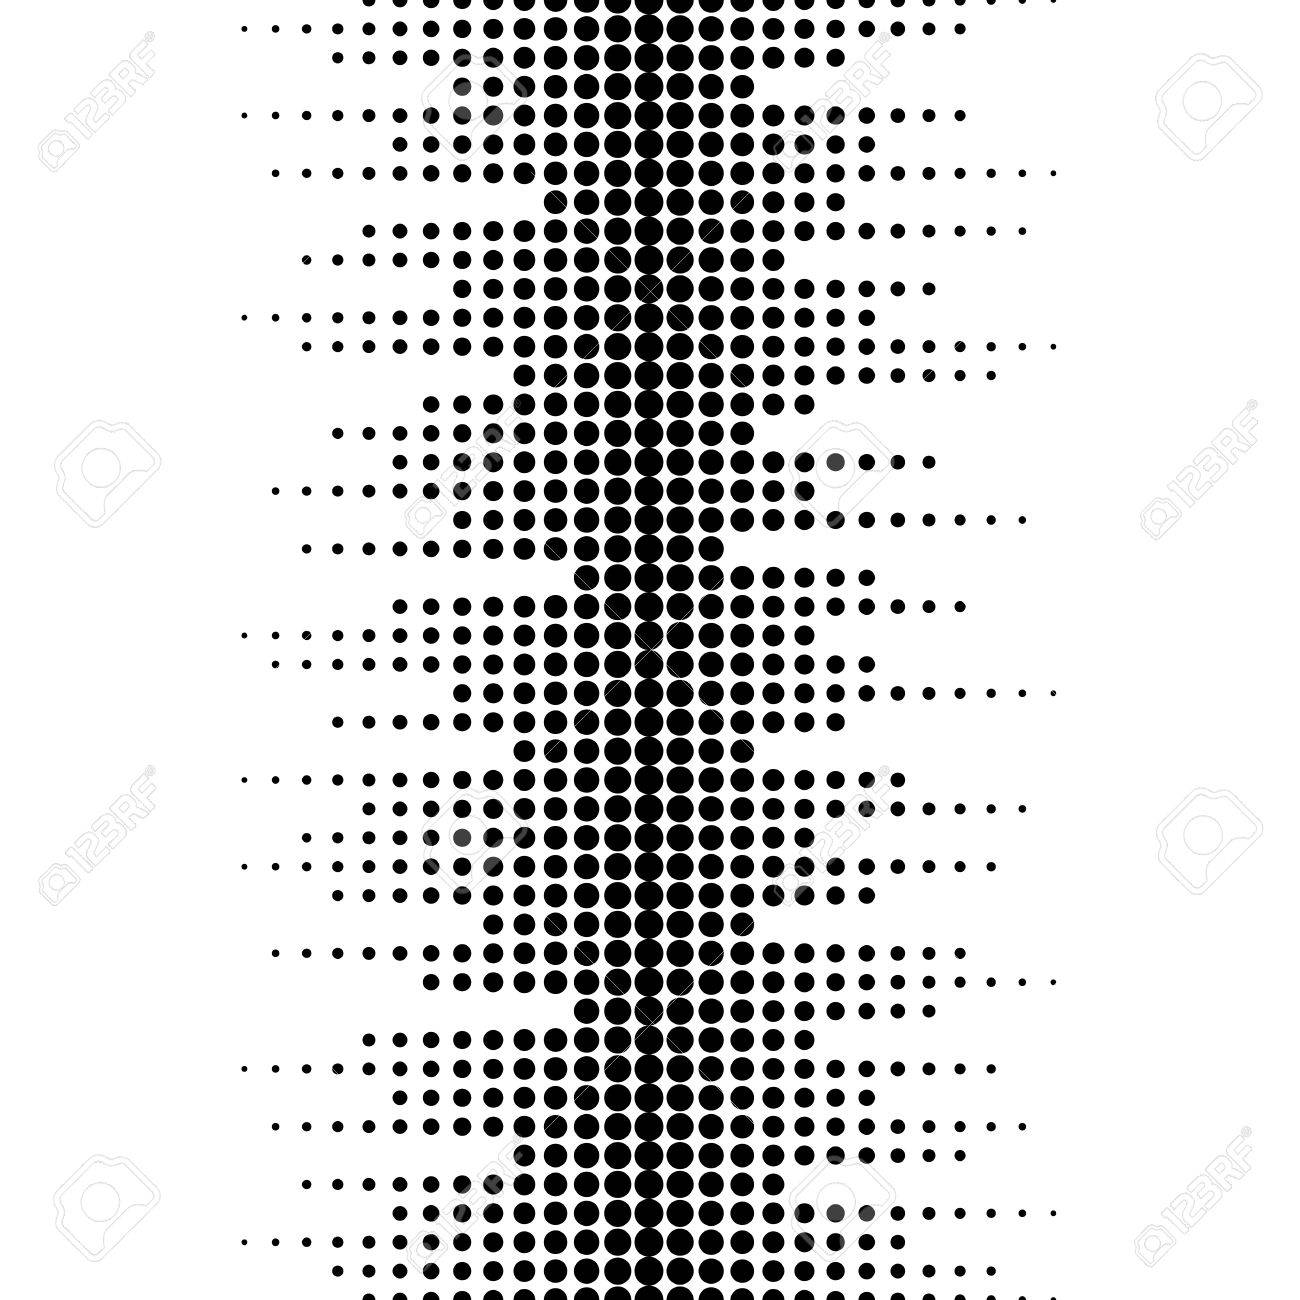 Vector monochrome seamless pattern. Dynamic visual effect, background with different sized dots. Black & white. Illustration of sound waves. Geometric texture for prints, digital, cover, decor, web - 77974871